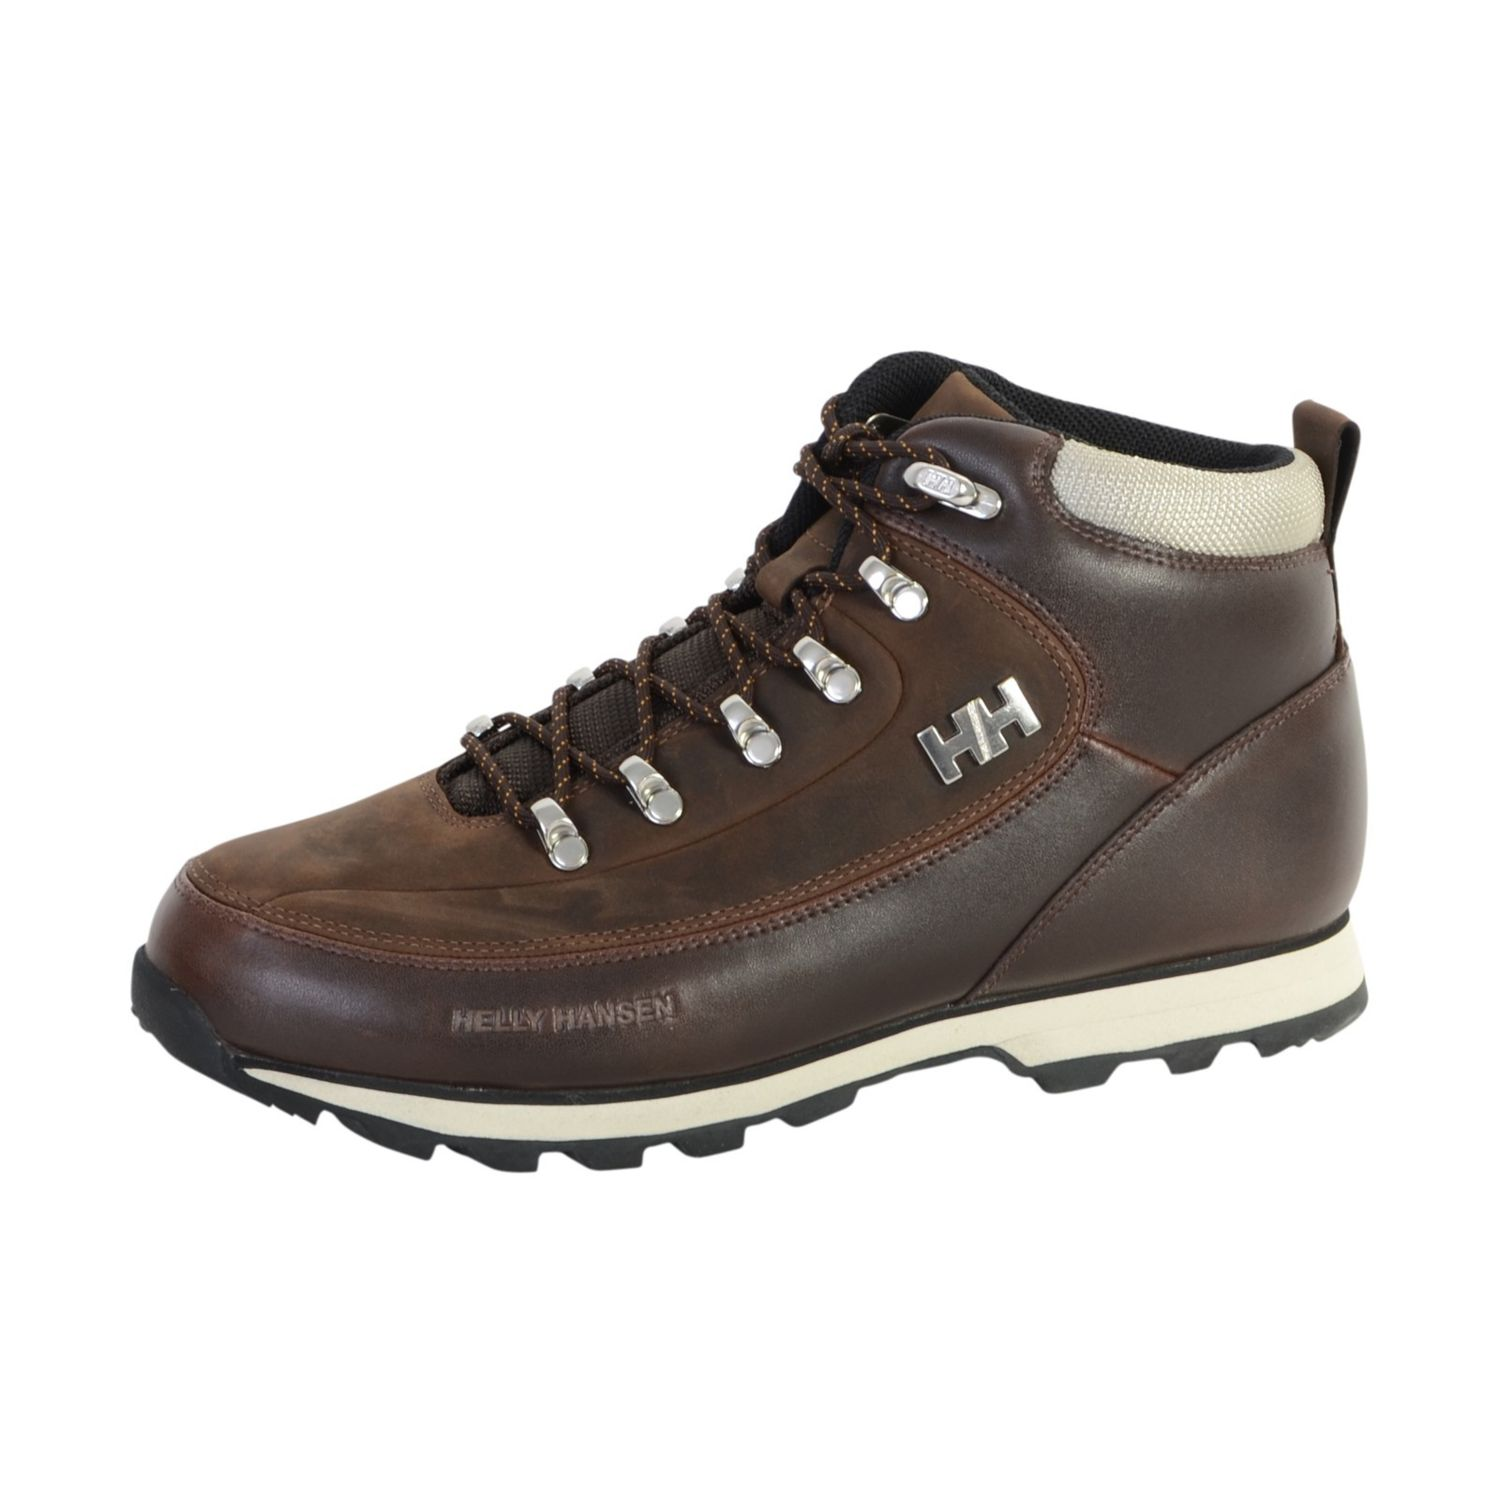 a5c0293a705d1 HELLY HANSEN- Chaussure The Forester Coffe Bean